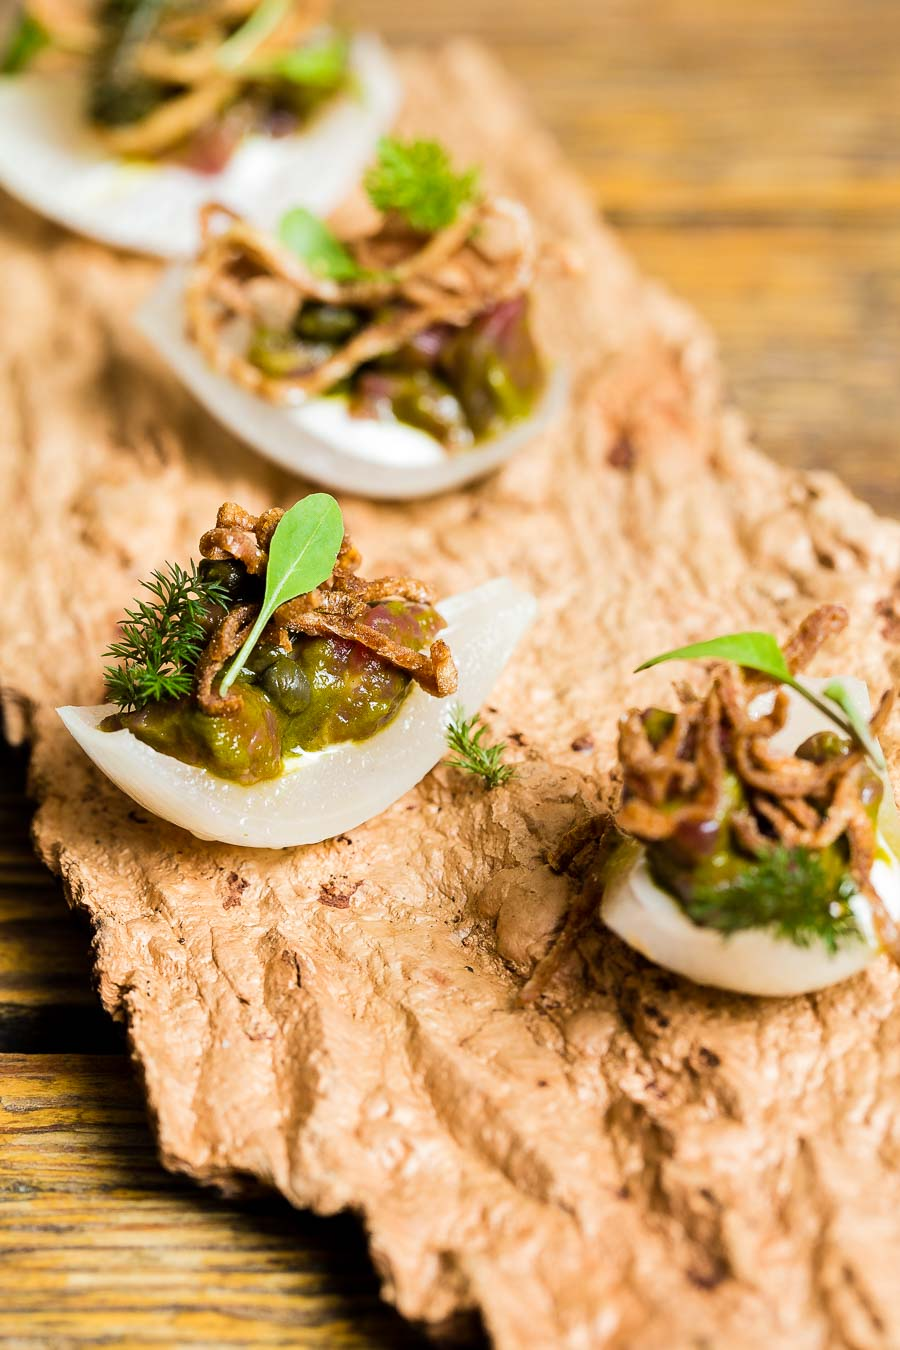 A piece of wooden bark with small slices of rock oysters topped with beef tartare and herbs, served at The Dairy from chef Robin Gill